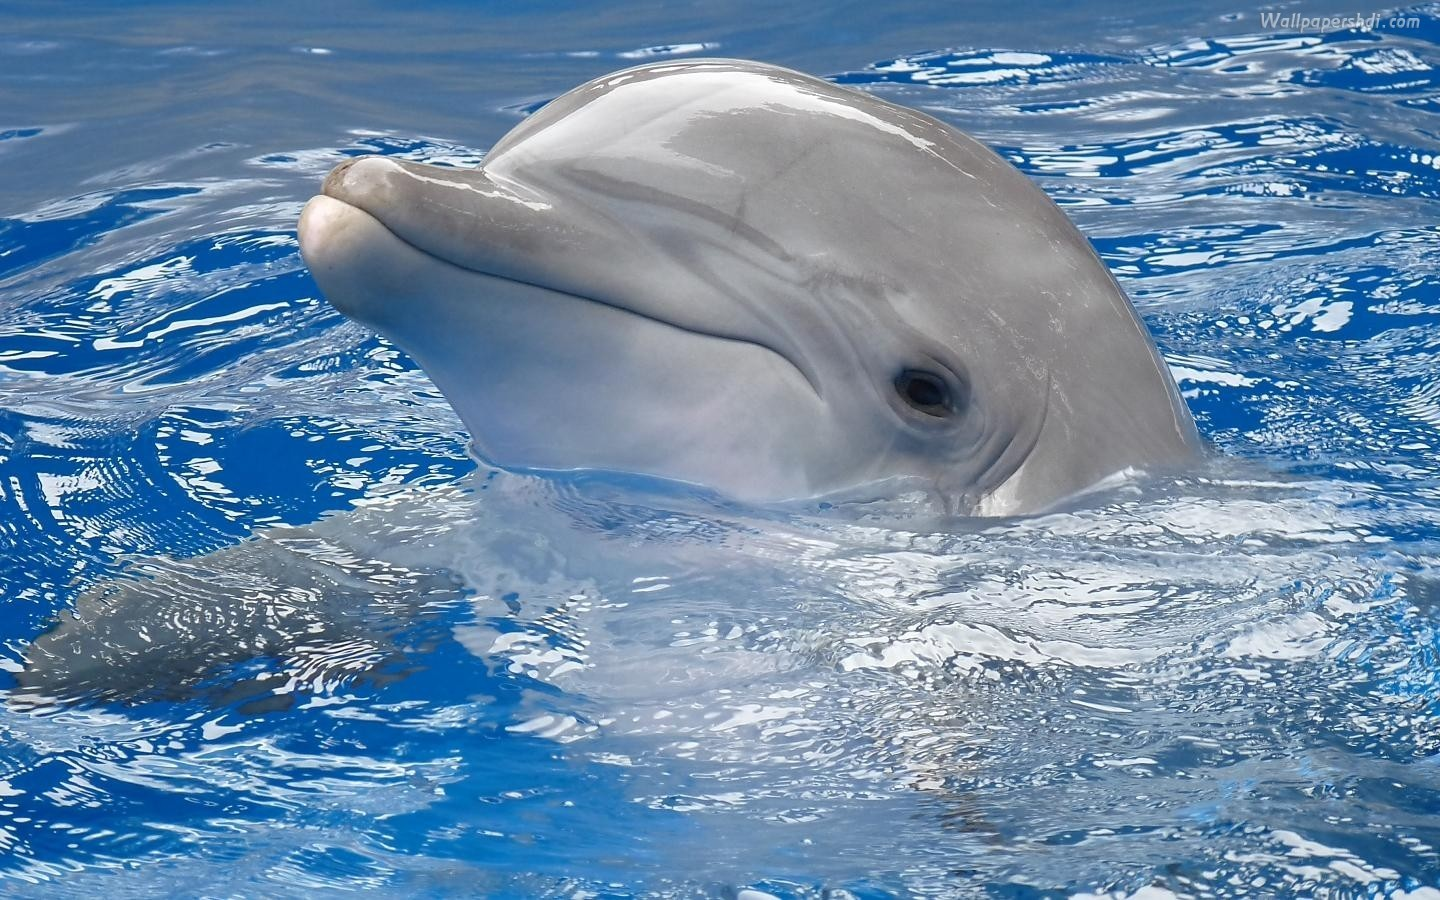 Pics Dolphin 20 Background Wallpaper HQ Backgrounds HD wallpapers 1440x900